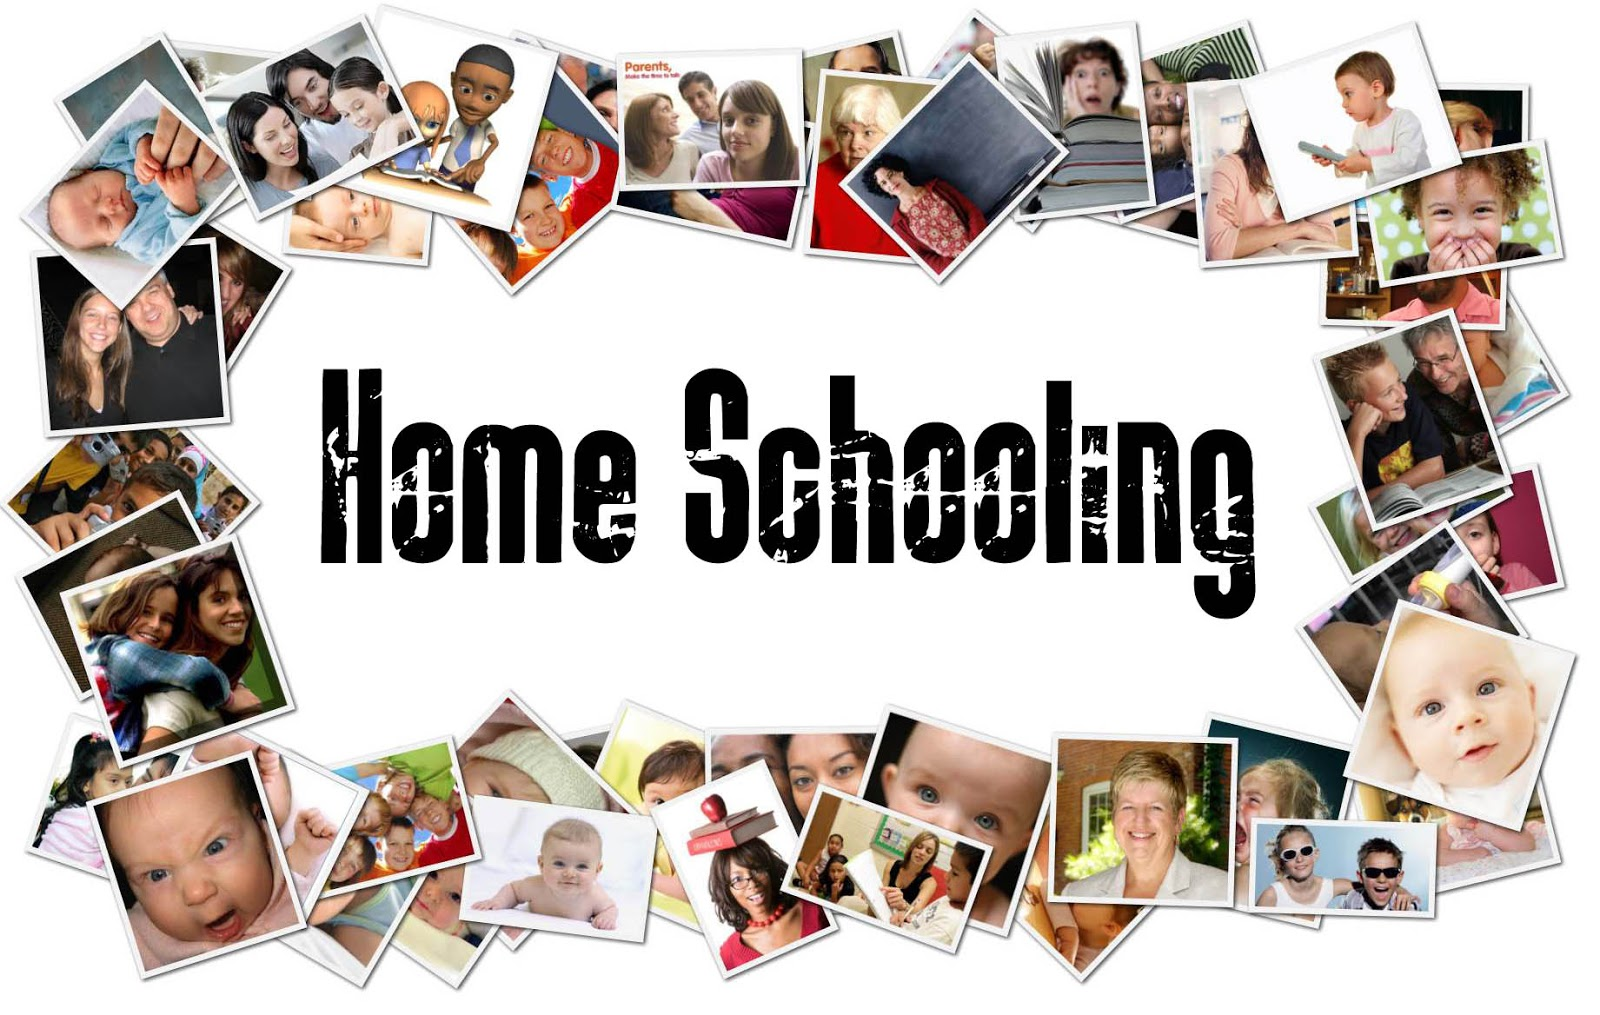 i can write an essay about the pros and cons of homeschooling my i can write an essay about the pros and cons of homeschooling